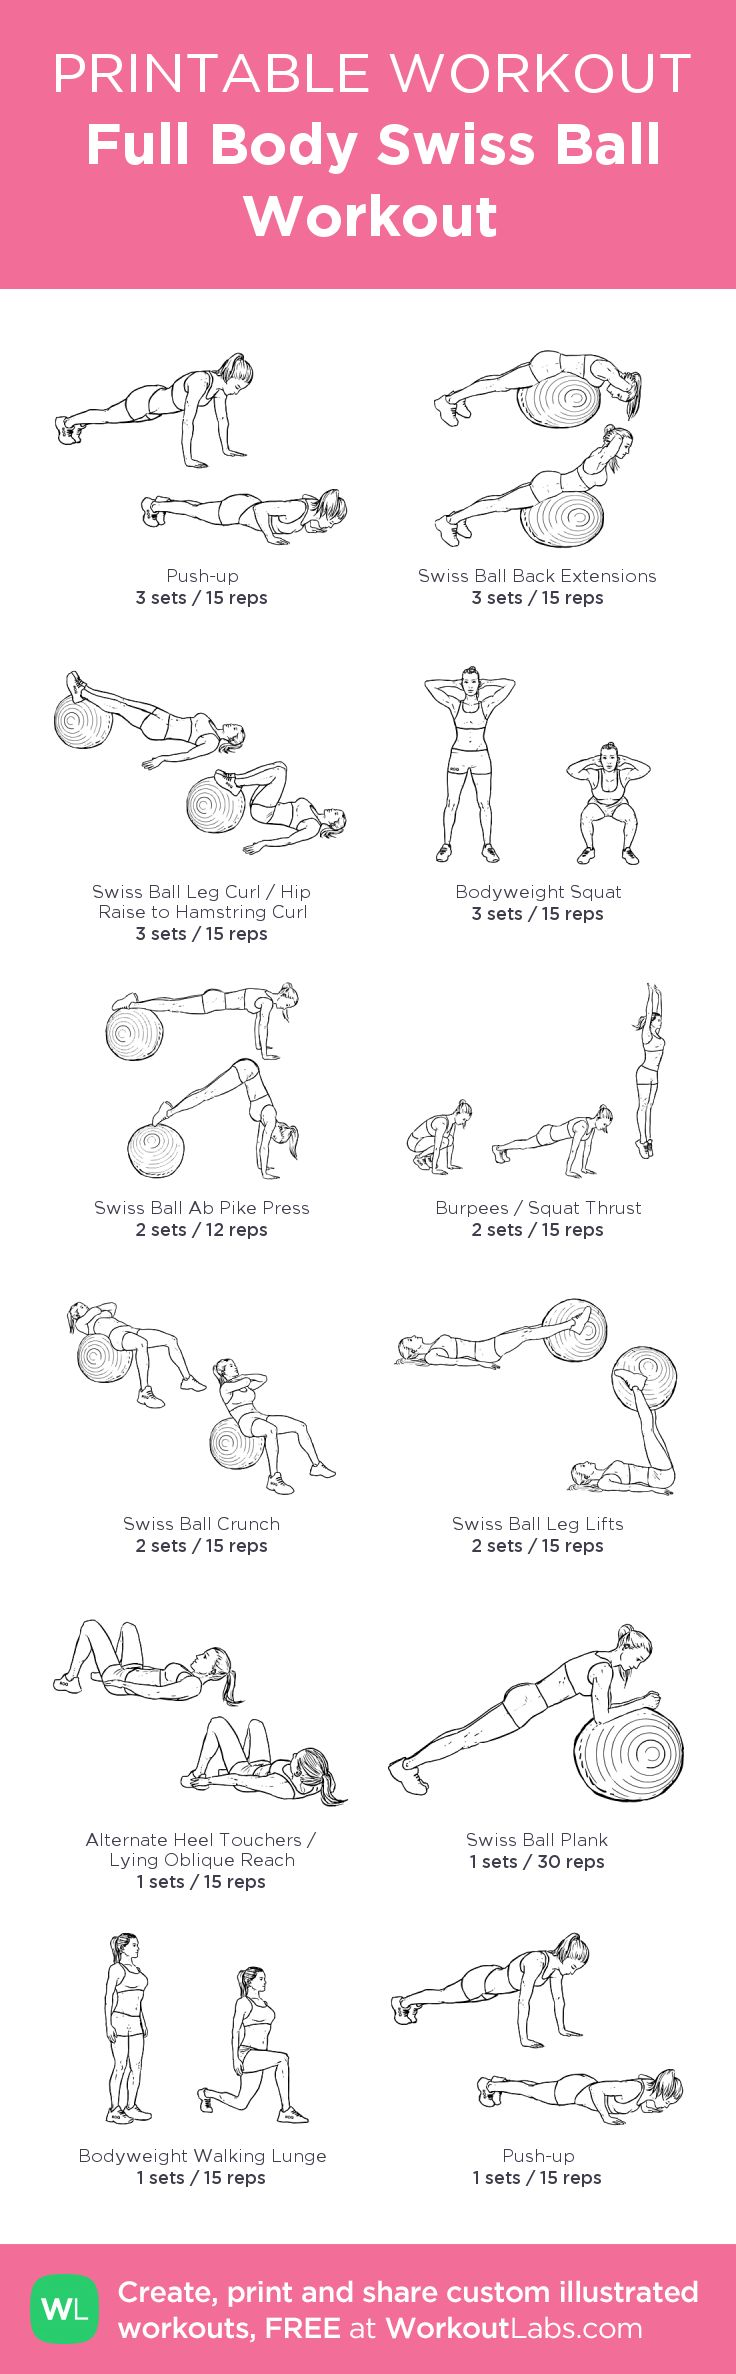 Full Body Swiss Ball Workout:my visual workout created at WorkoutLabs.com • Click through to customize and download as a FREE PDF! #customworkout